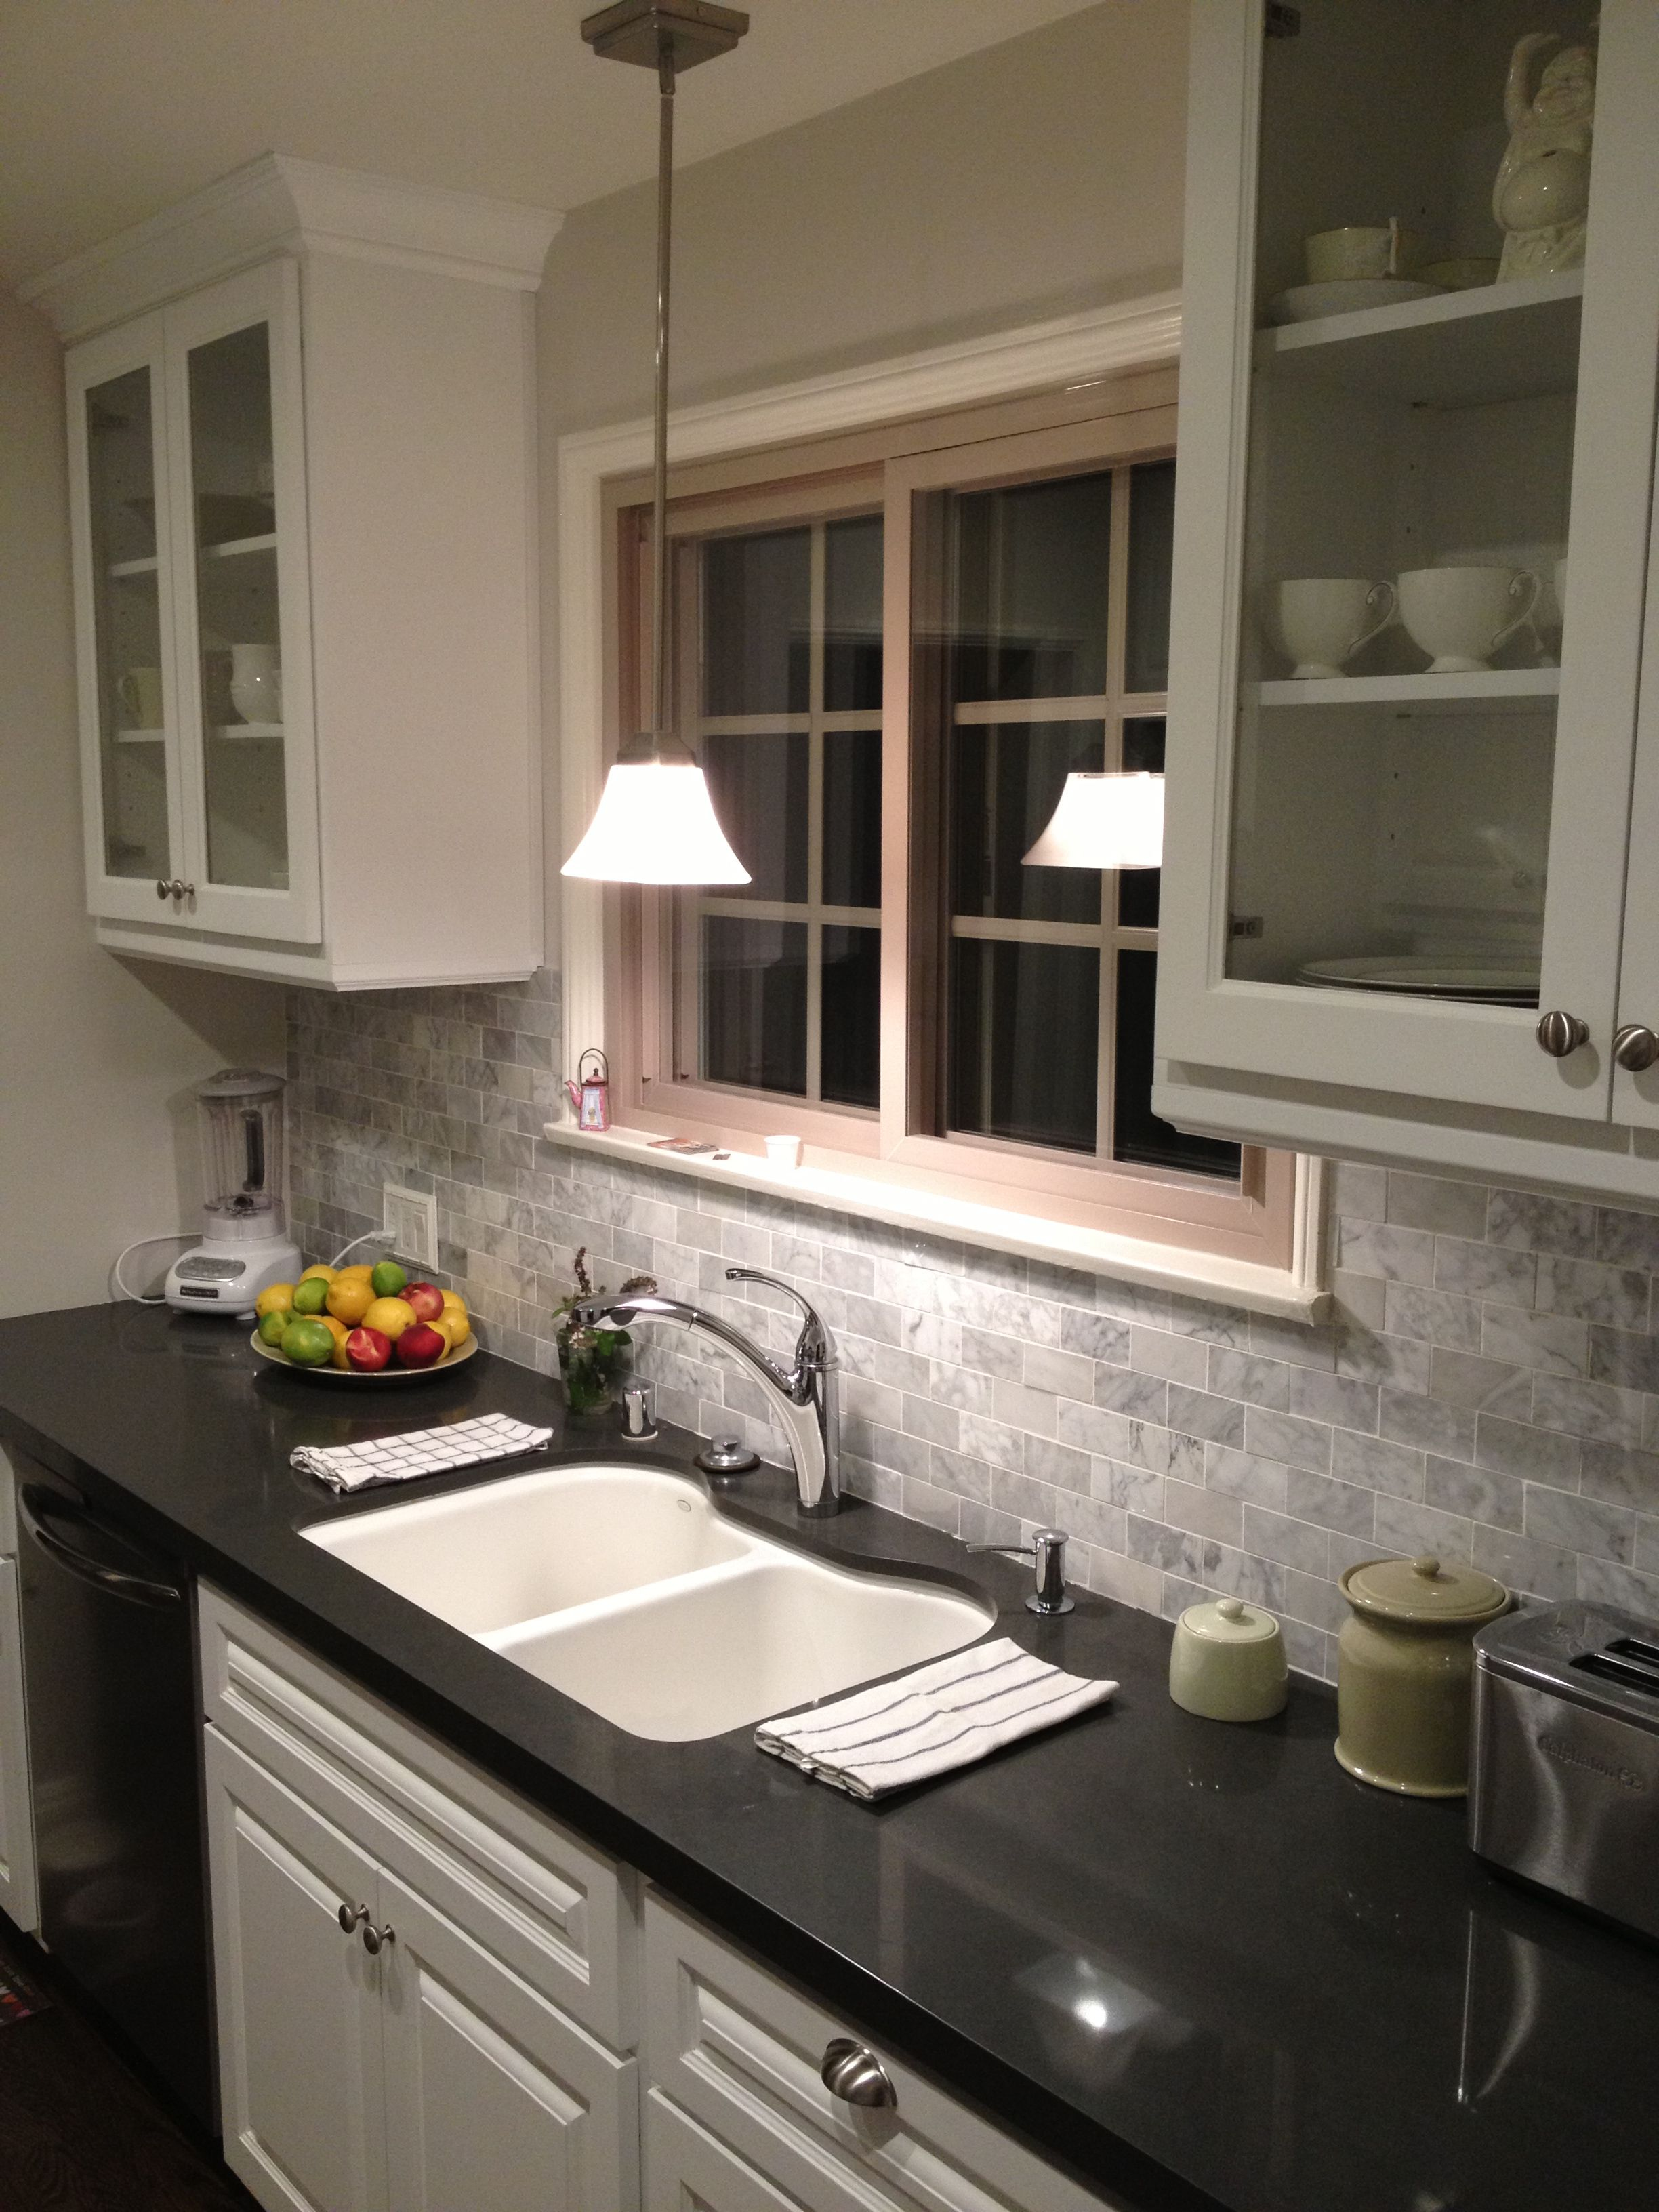 Carrera Backsplash And Stainless Steel Appliances With 10